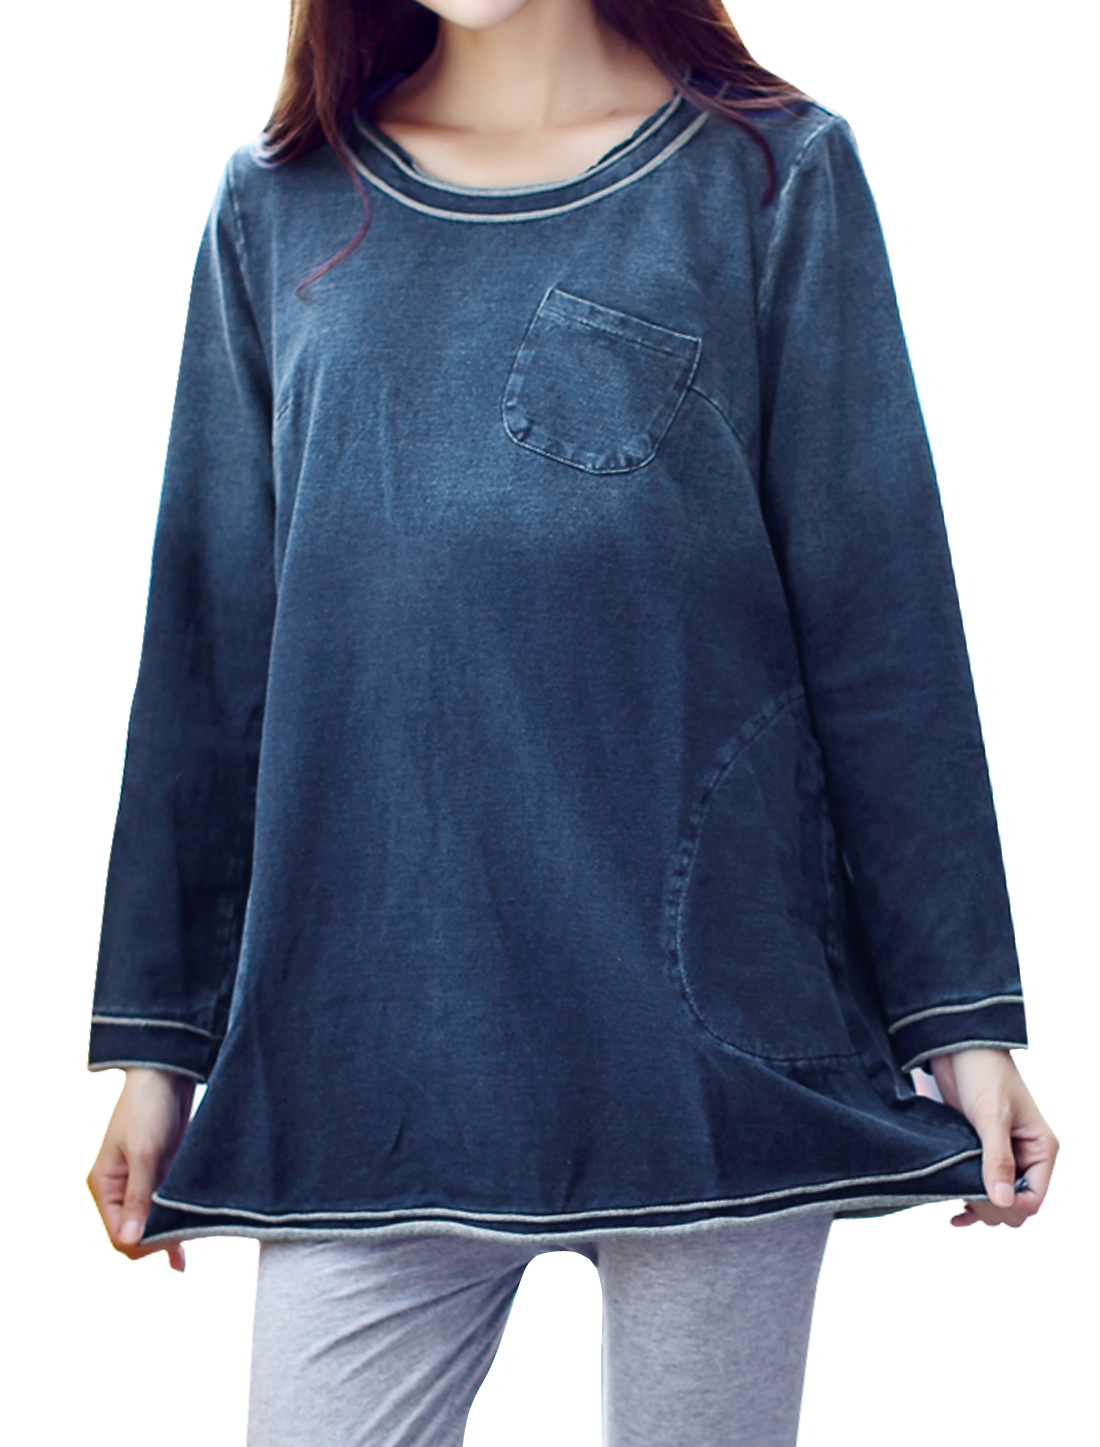 Maternity Round Neck Long Sleeves Raw Edge Tunic Denim Top Blue XS